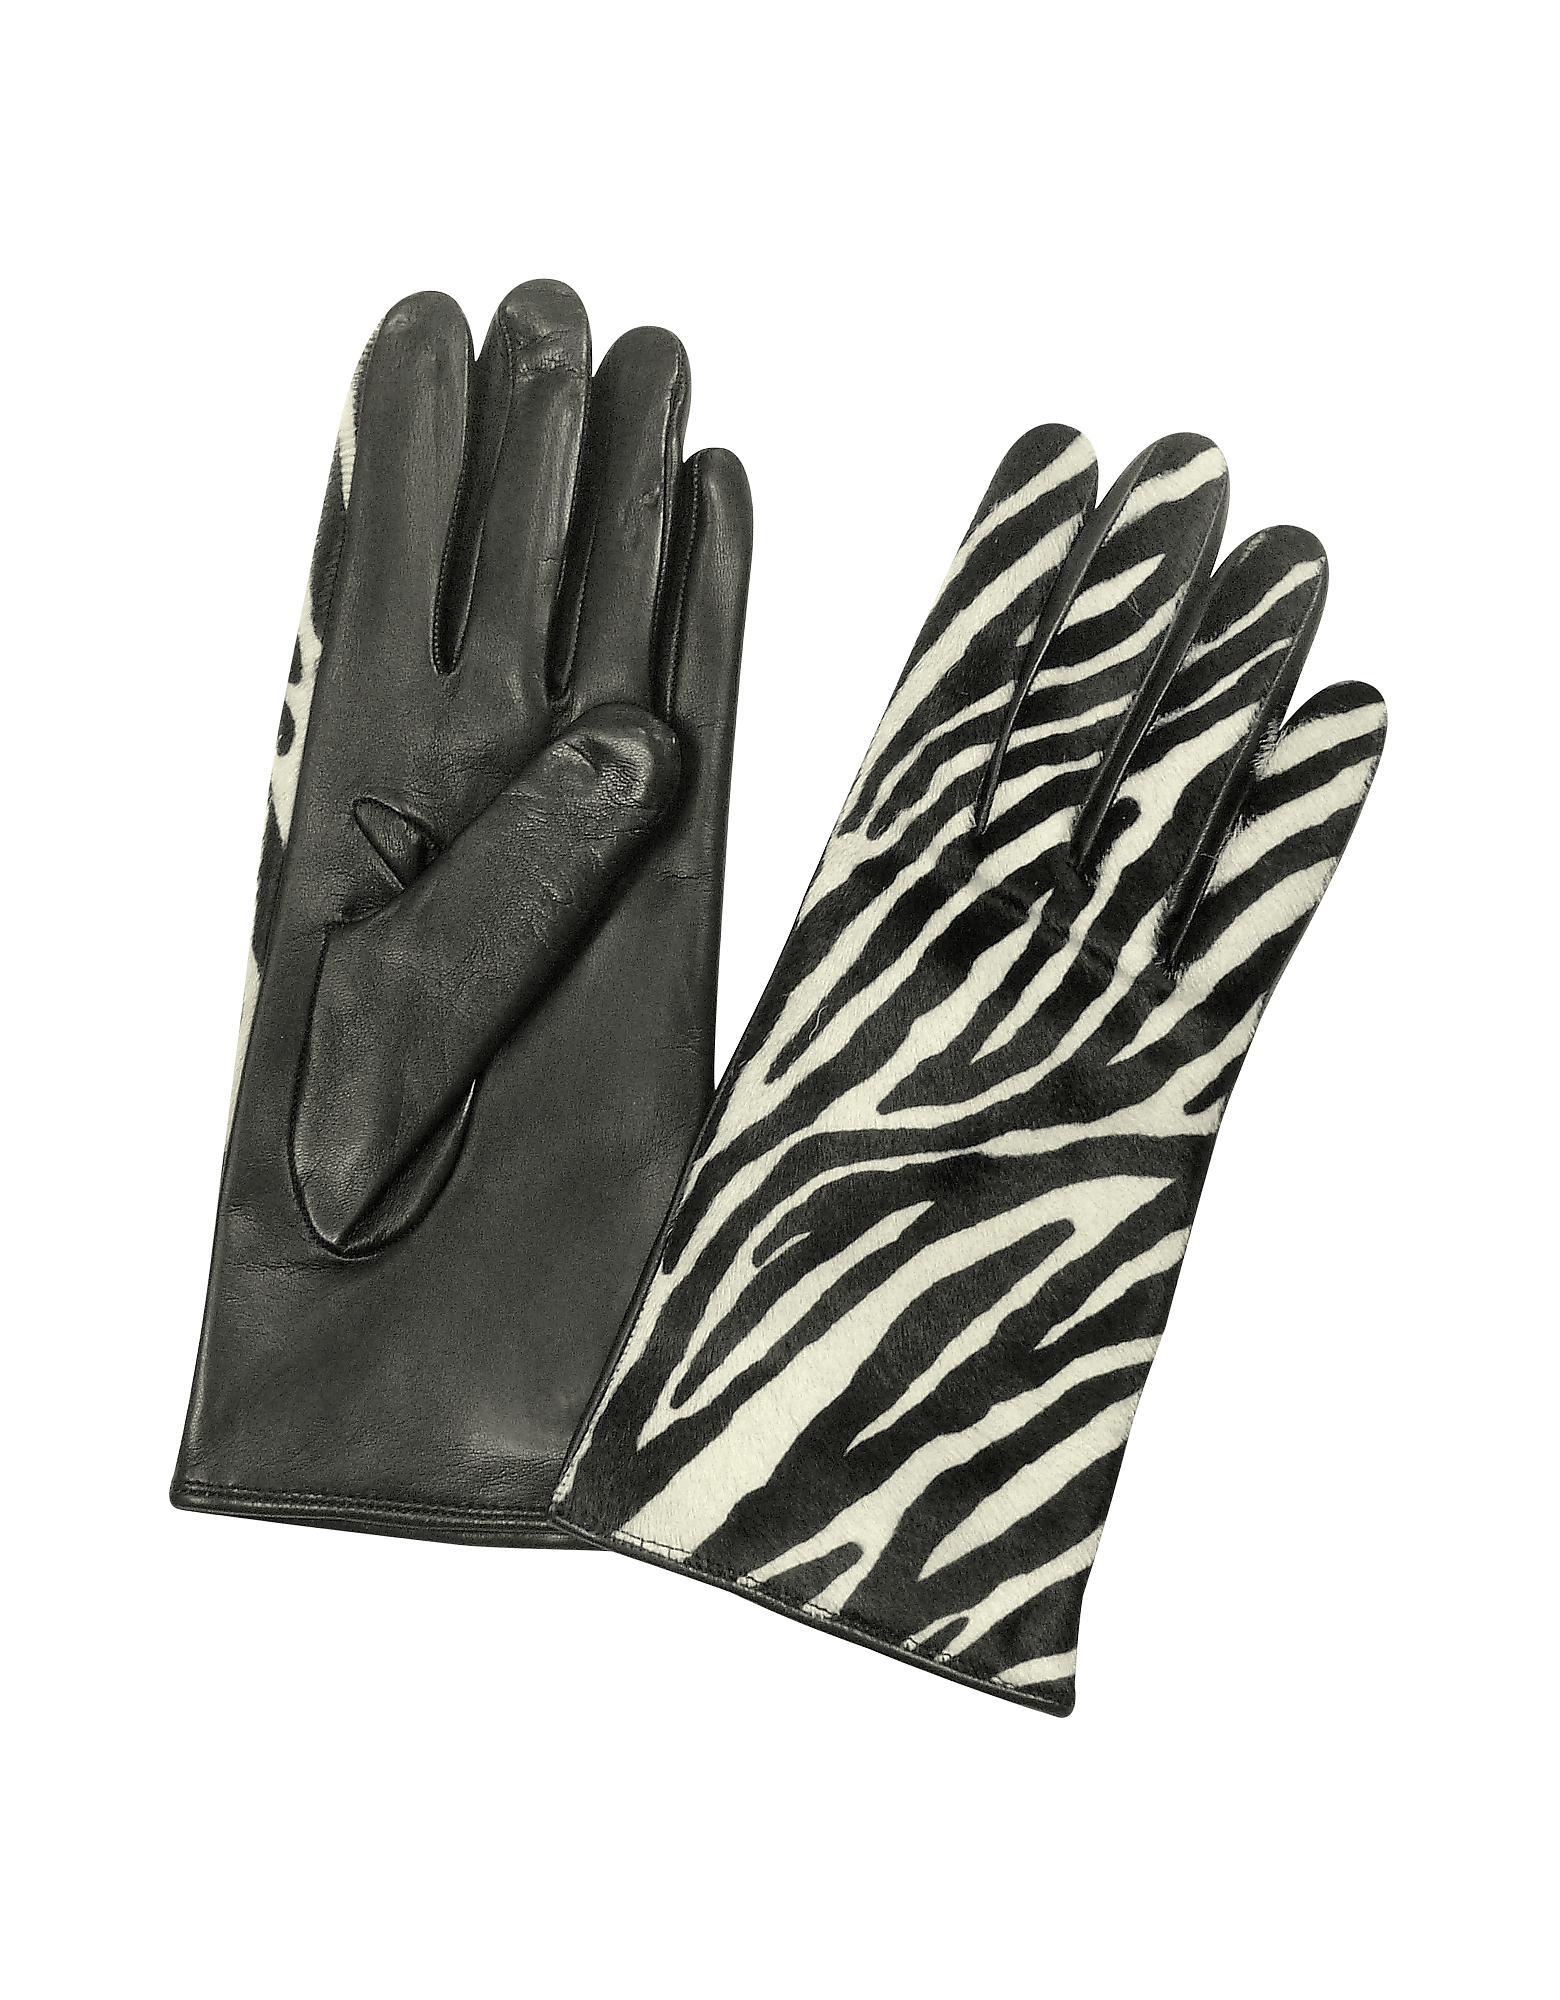 Forzieri Women's Gloves, Women's Zebra Pony Hair and Italian Nappa Leather Gloves